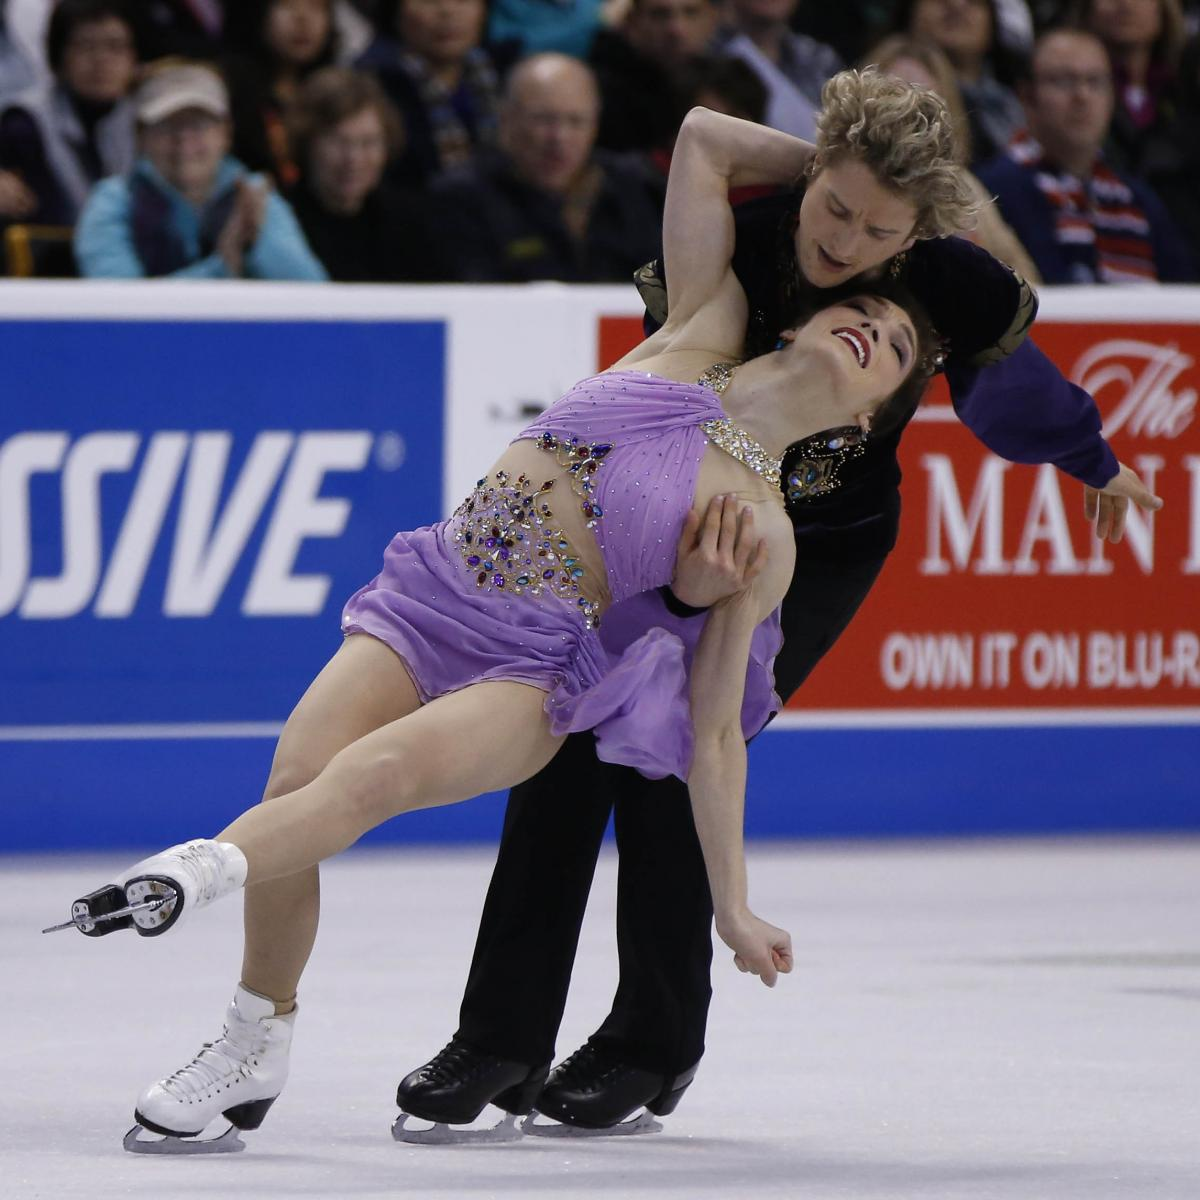 What usa figure skaters are dating